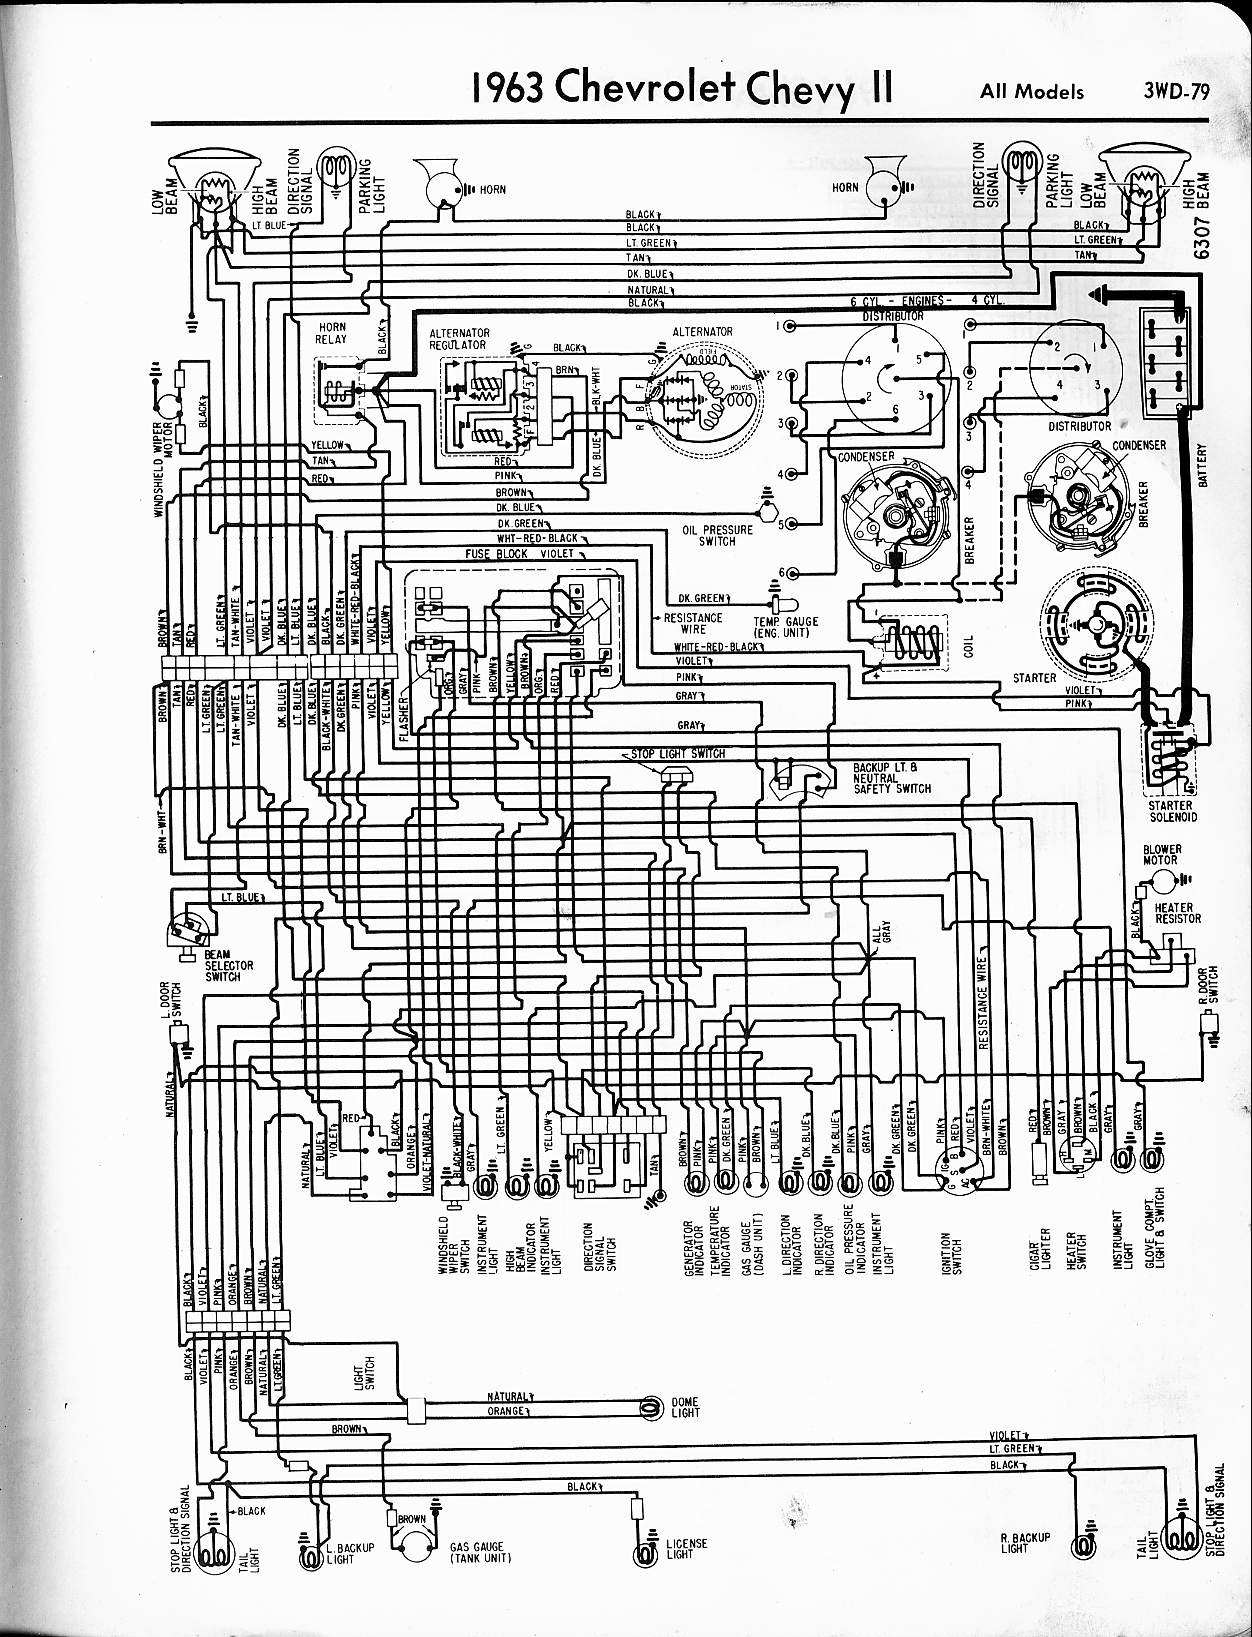 1963 Impala Headlight Switch Wiring Diagram Guide And Chevy On For 2004 62 Diagrams Todays Rh 10 17 12 1813weddingbarn Com 1964 1965